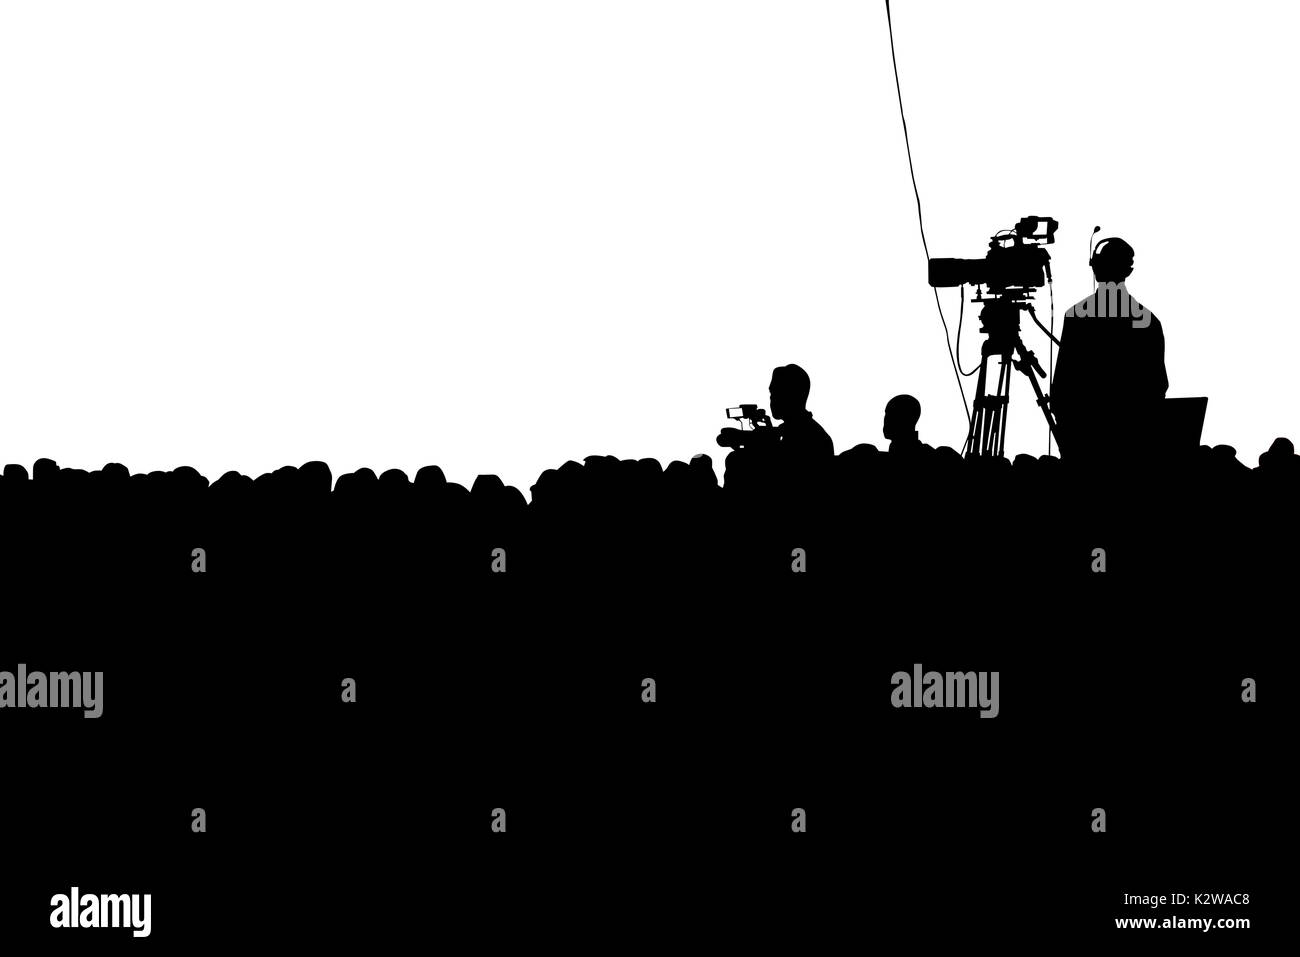 Television Press Conference production cameraman and crowd silhouette. Clipping path - Stock Image